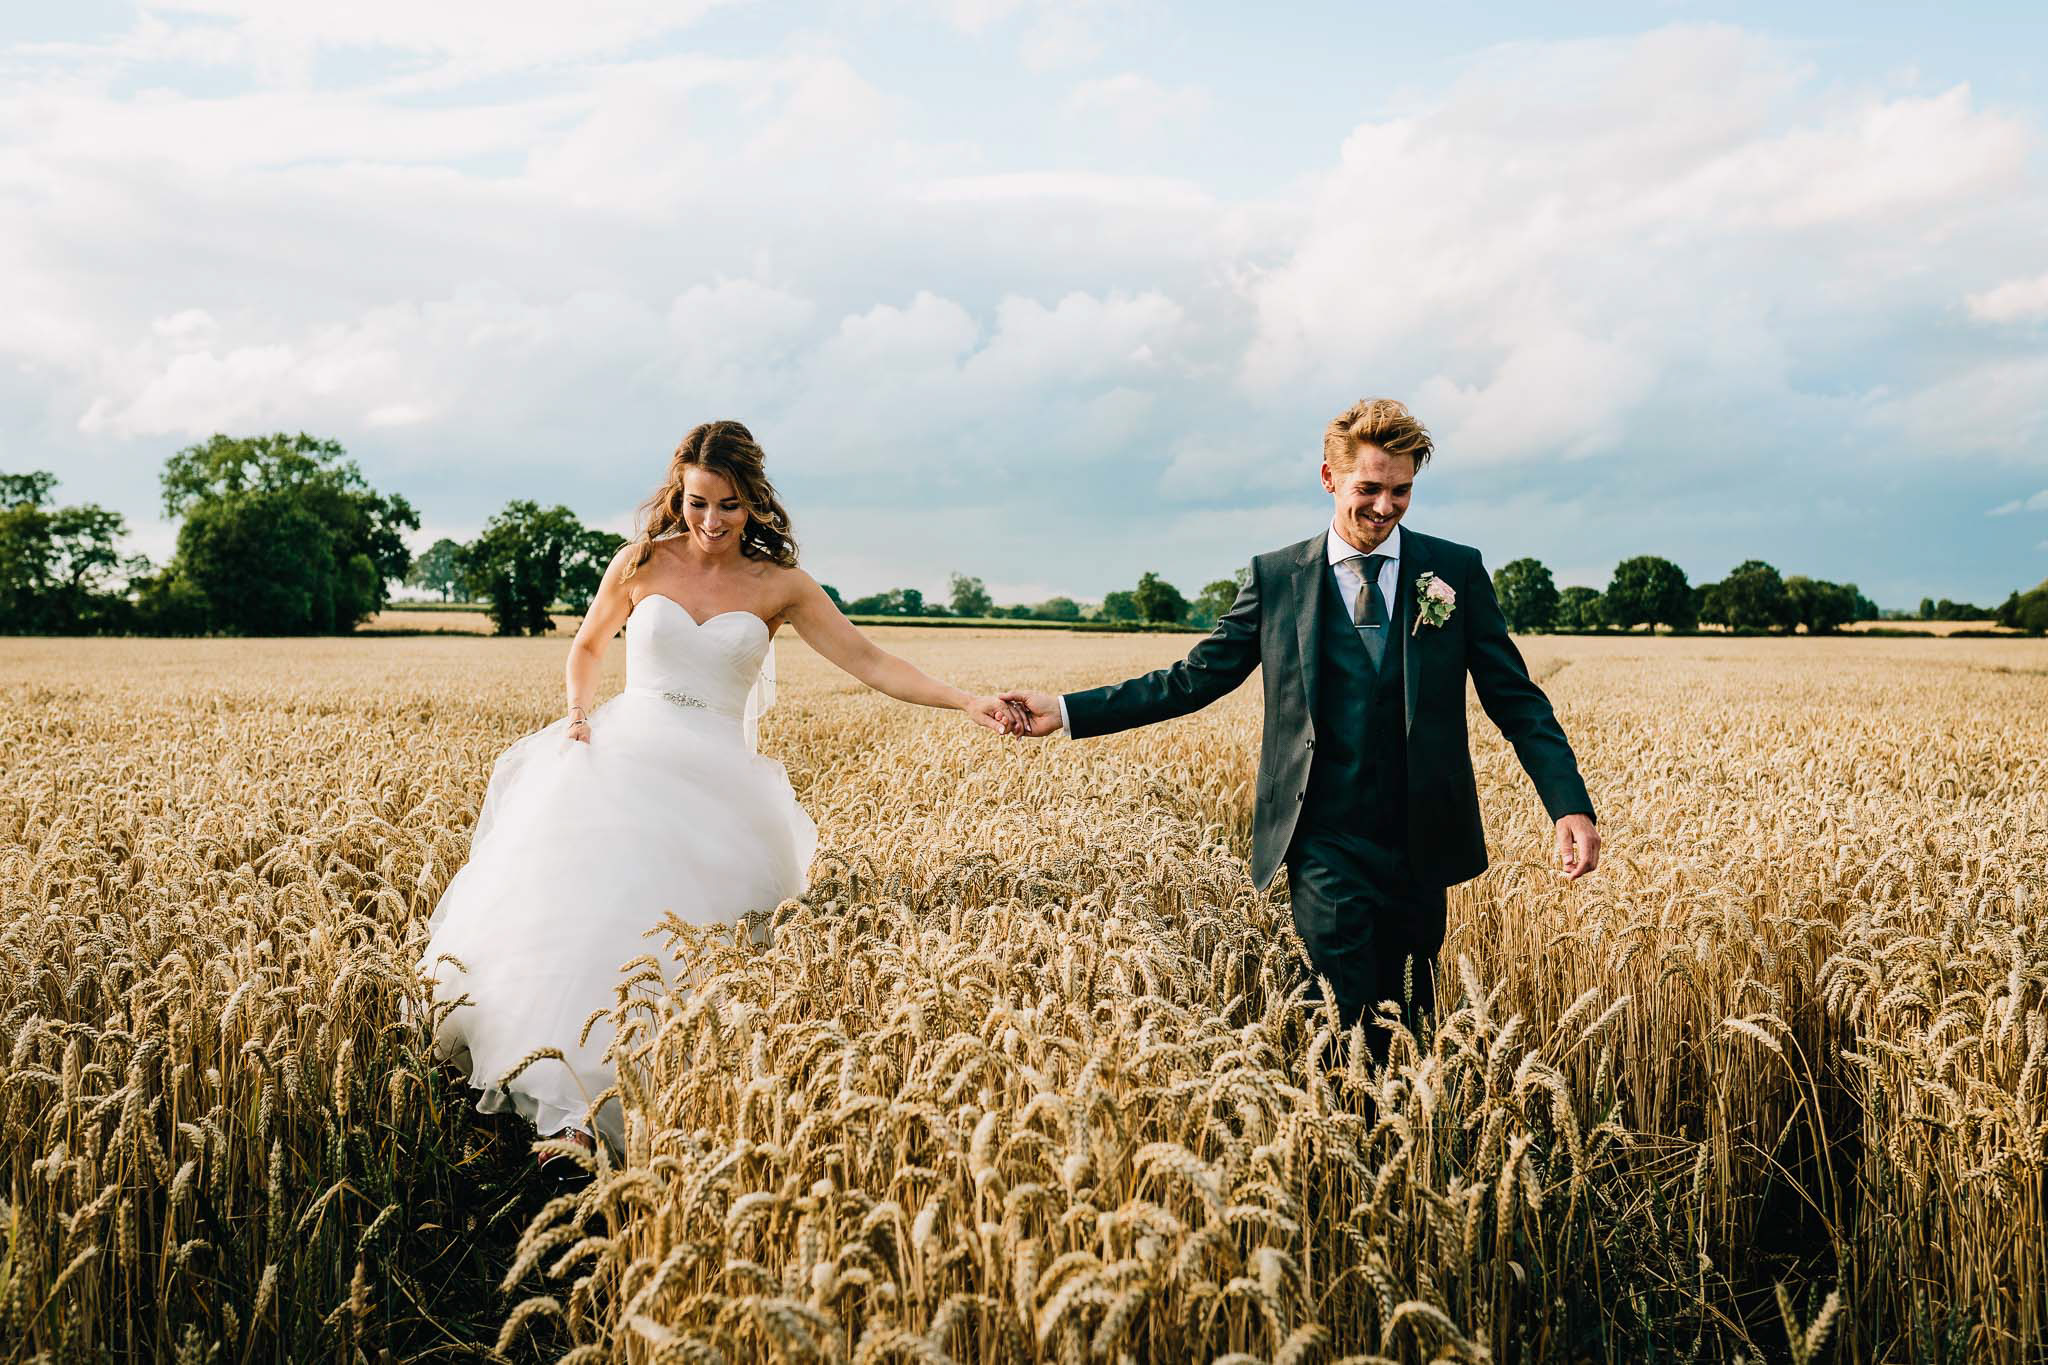 MARRIED COUPLE WALKING IN FIELD AT MYTHE WEDDING BARN STAFFORDSHIRE